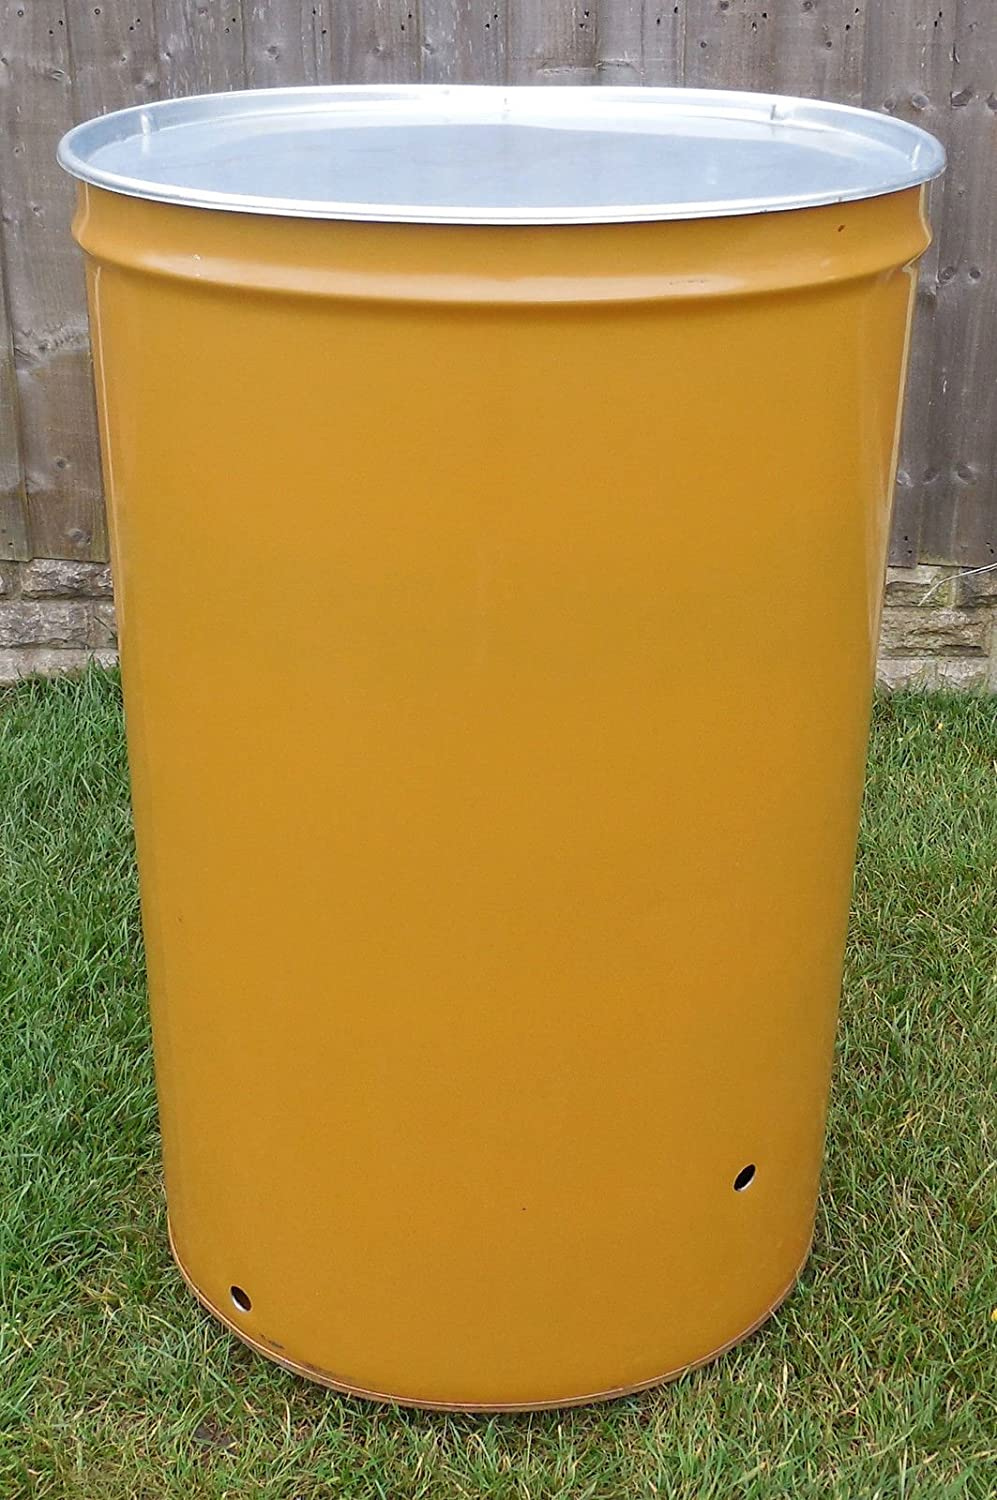 210L BURNER BIN / INCINERATOR BIN WITH LID